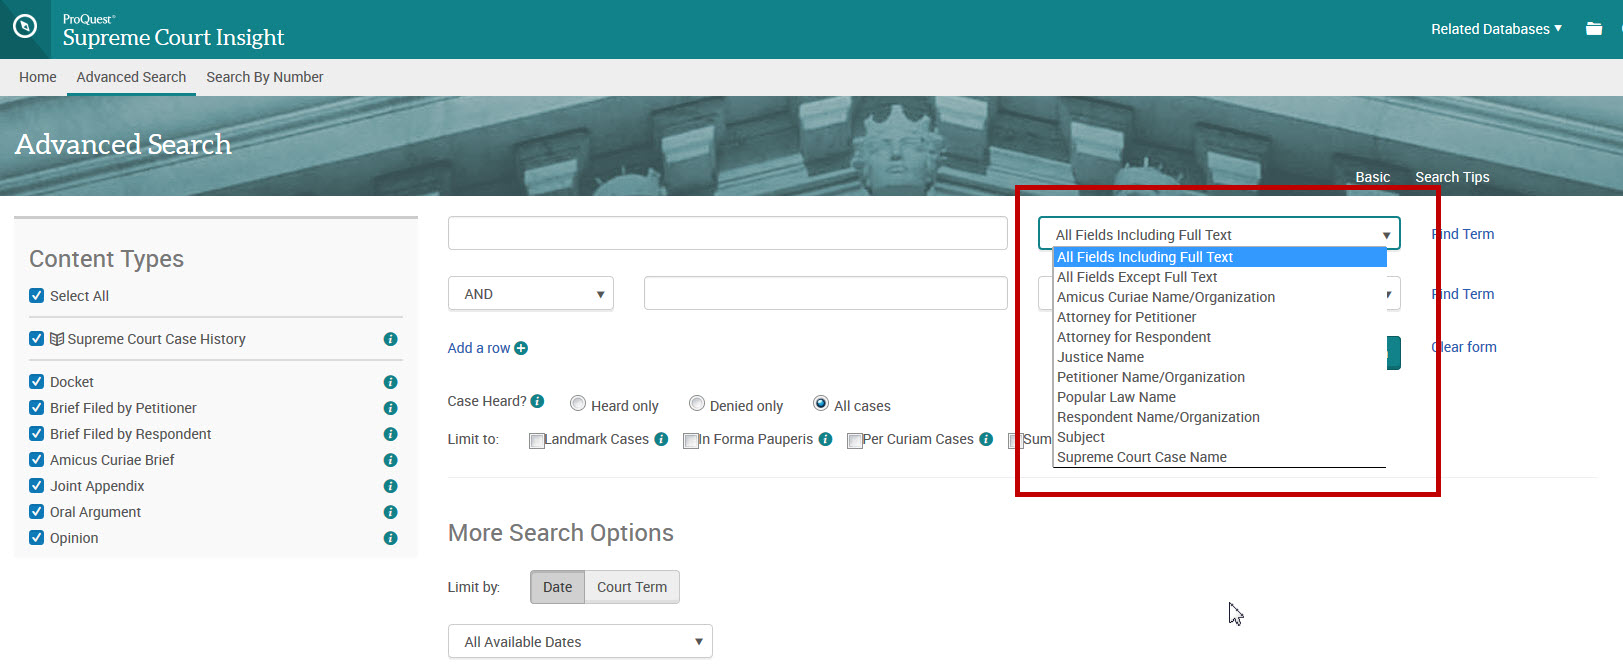 Advanced search form showing fielded search options